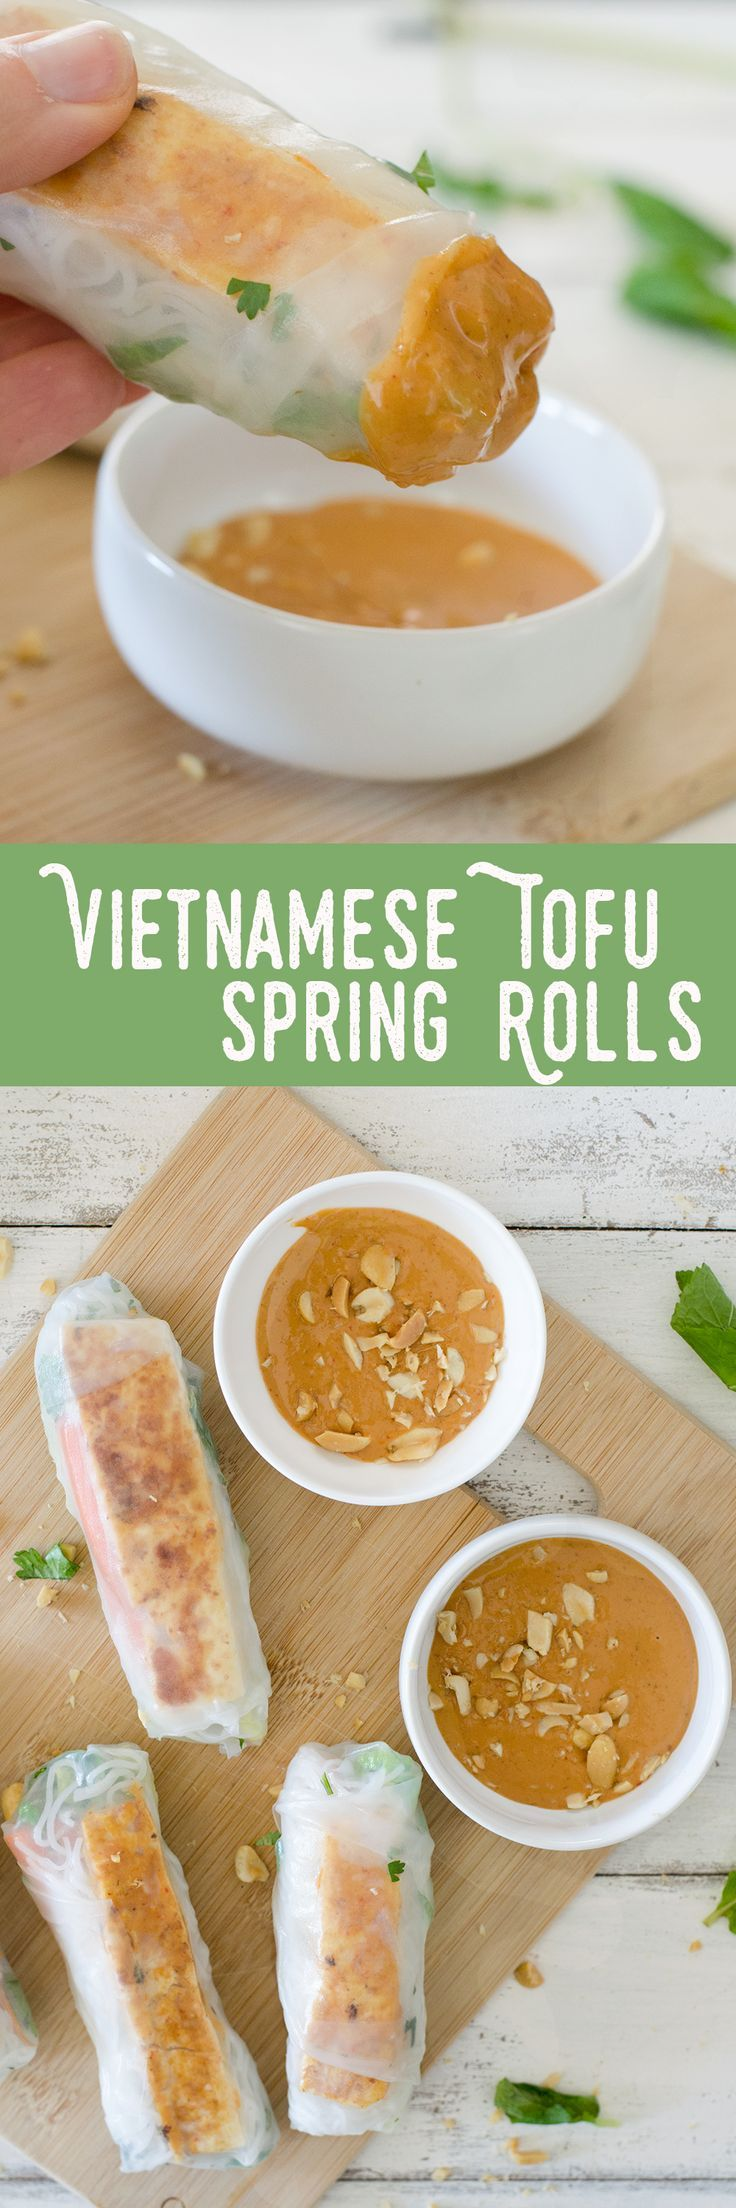 Vietnamese Tofu Spring Rolls! You will love these healthy salad rolls. Spring Rice Rolls stuffed with crispy peanut tofu, shredded cabbage, carrots, mint, cilantro and vermicelli noodles. Served with a spicy peanut-lime dipping sauce. Vegan and easily gluten-free. | www.delishknowled...